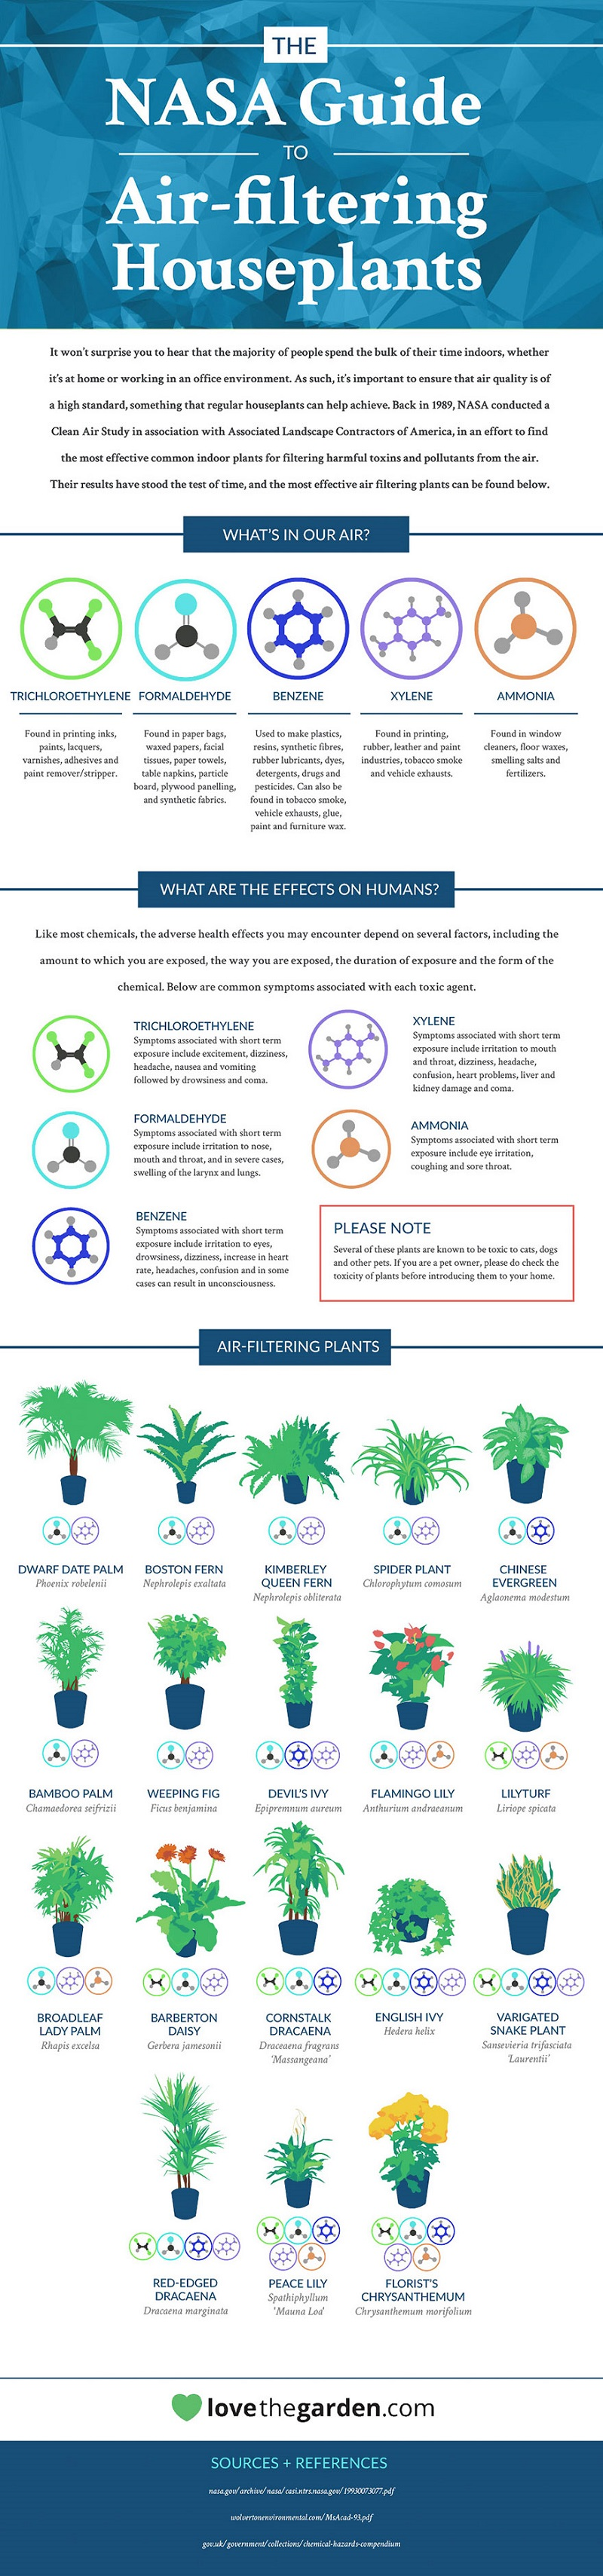 best-air-filtering-houseplants-nasa-infographic